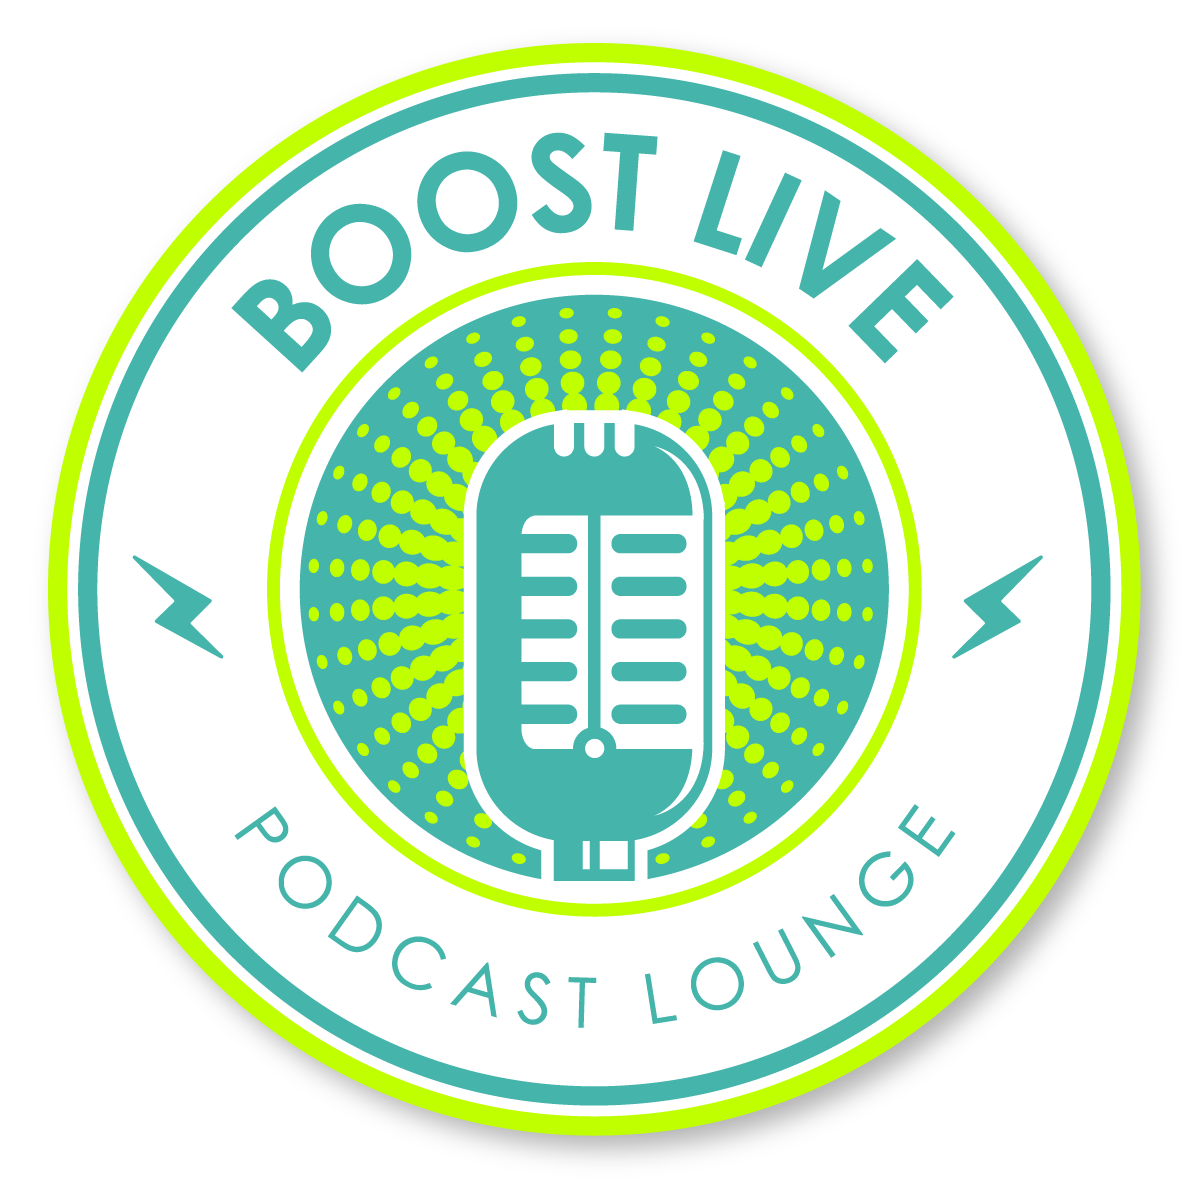 boost livePNG